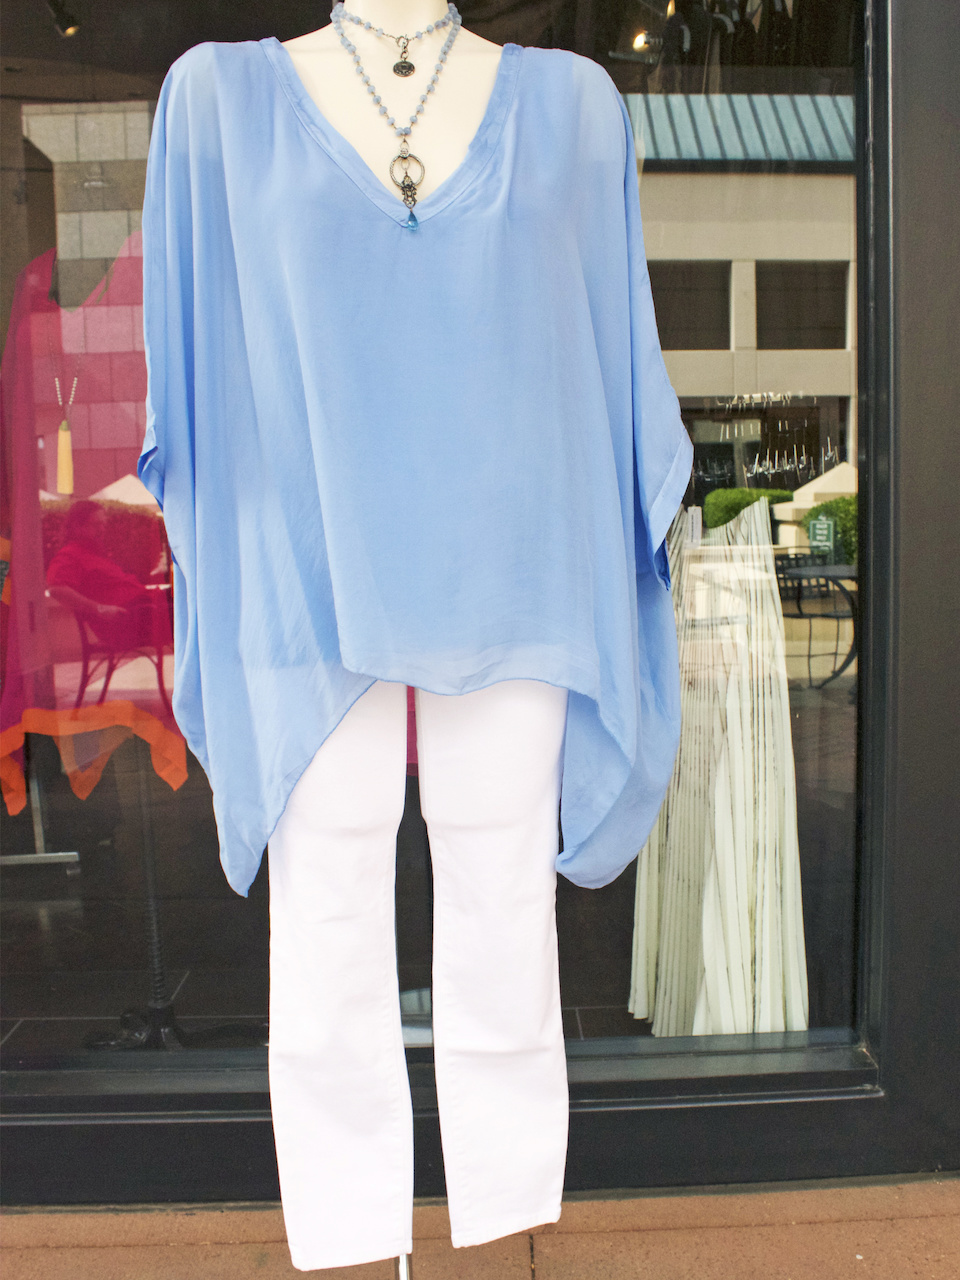 A classic summer look - a flowy, ice-blue top with a pair of white jeans